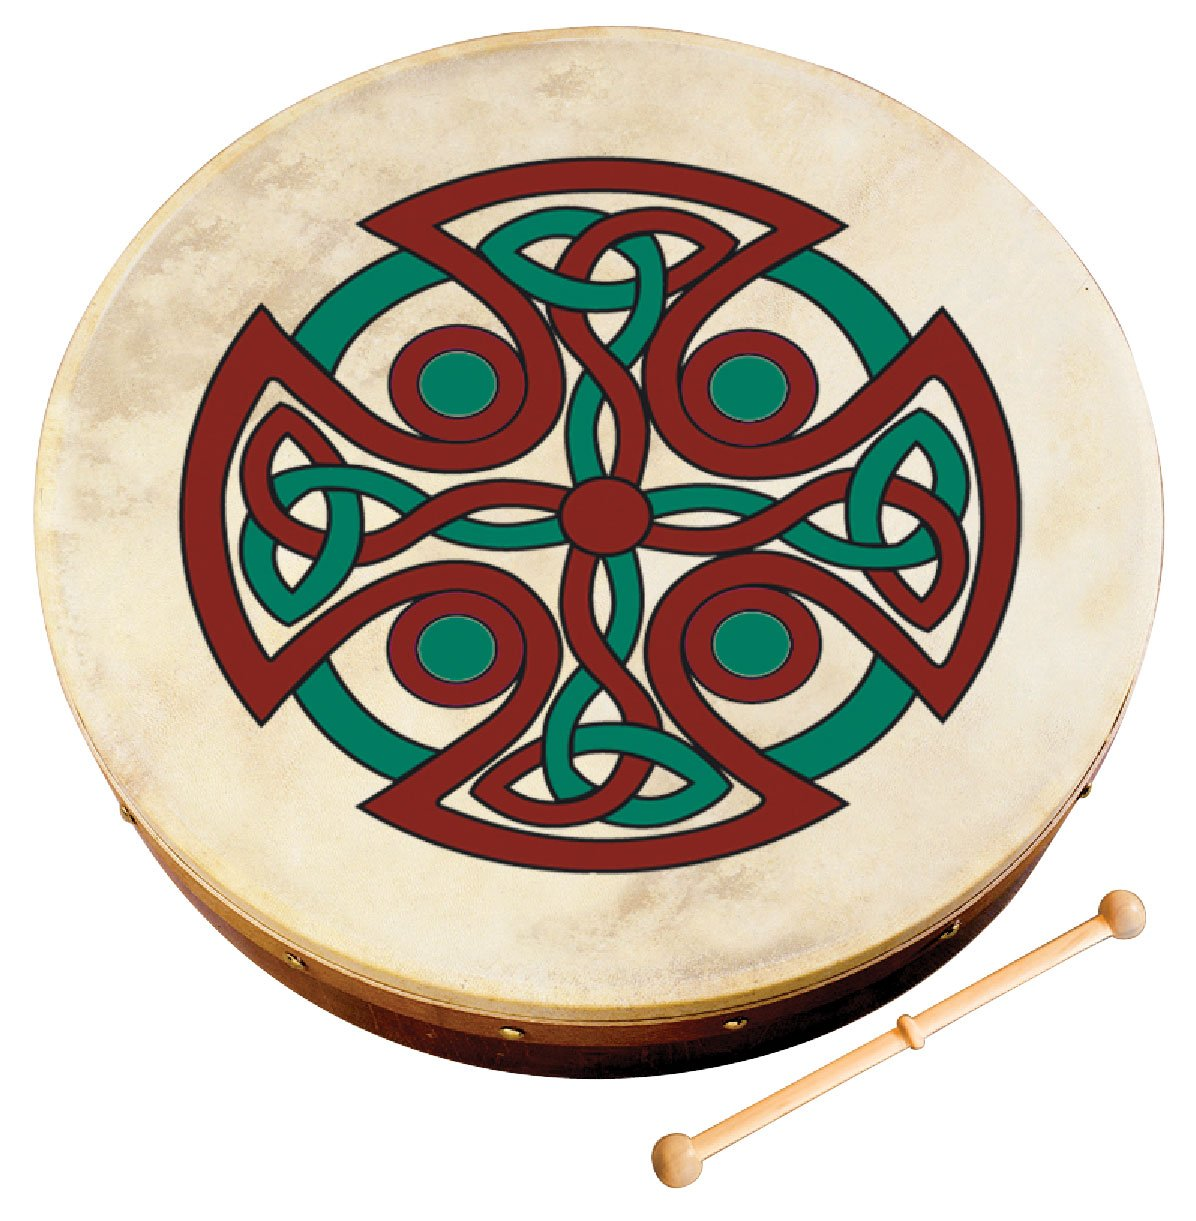 Waltons Bodhrán 8'' (Carew Cross) - Handcrafted Irish Instrument - Crisp & Musical Tone - Hardwood Beater Included w/Purchase by Waltons